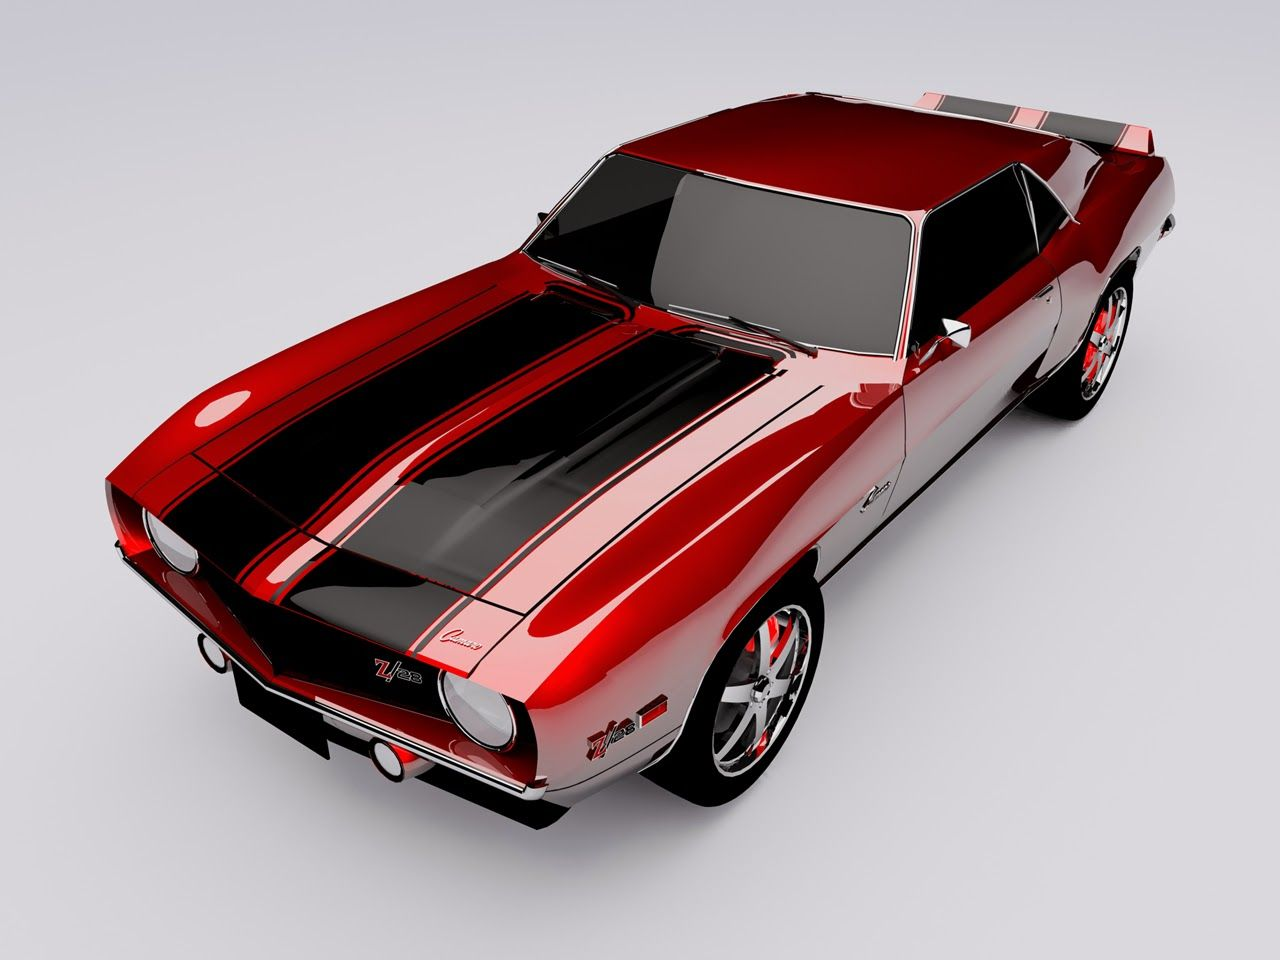 The Best Old Muscle cars 1969 Z28 Chevy Camaro | Classic Chevy ...